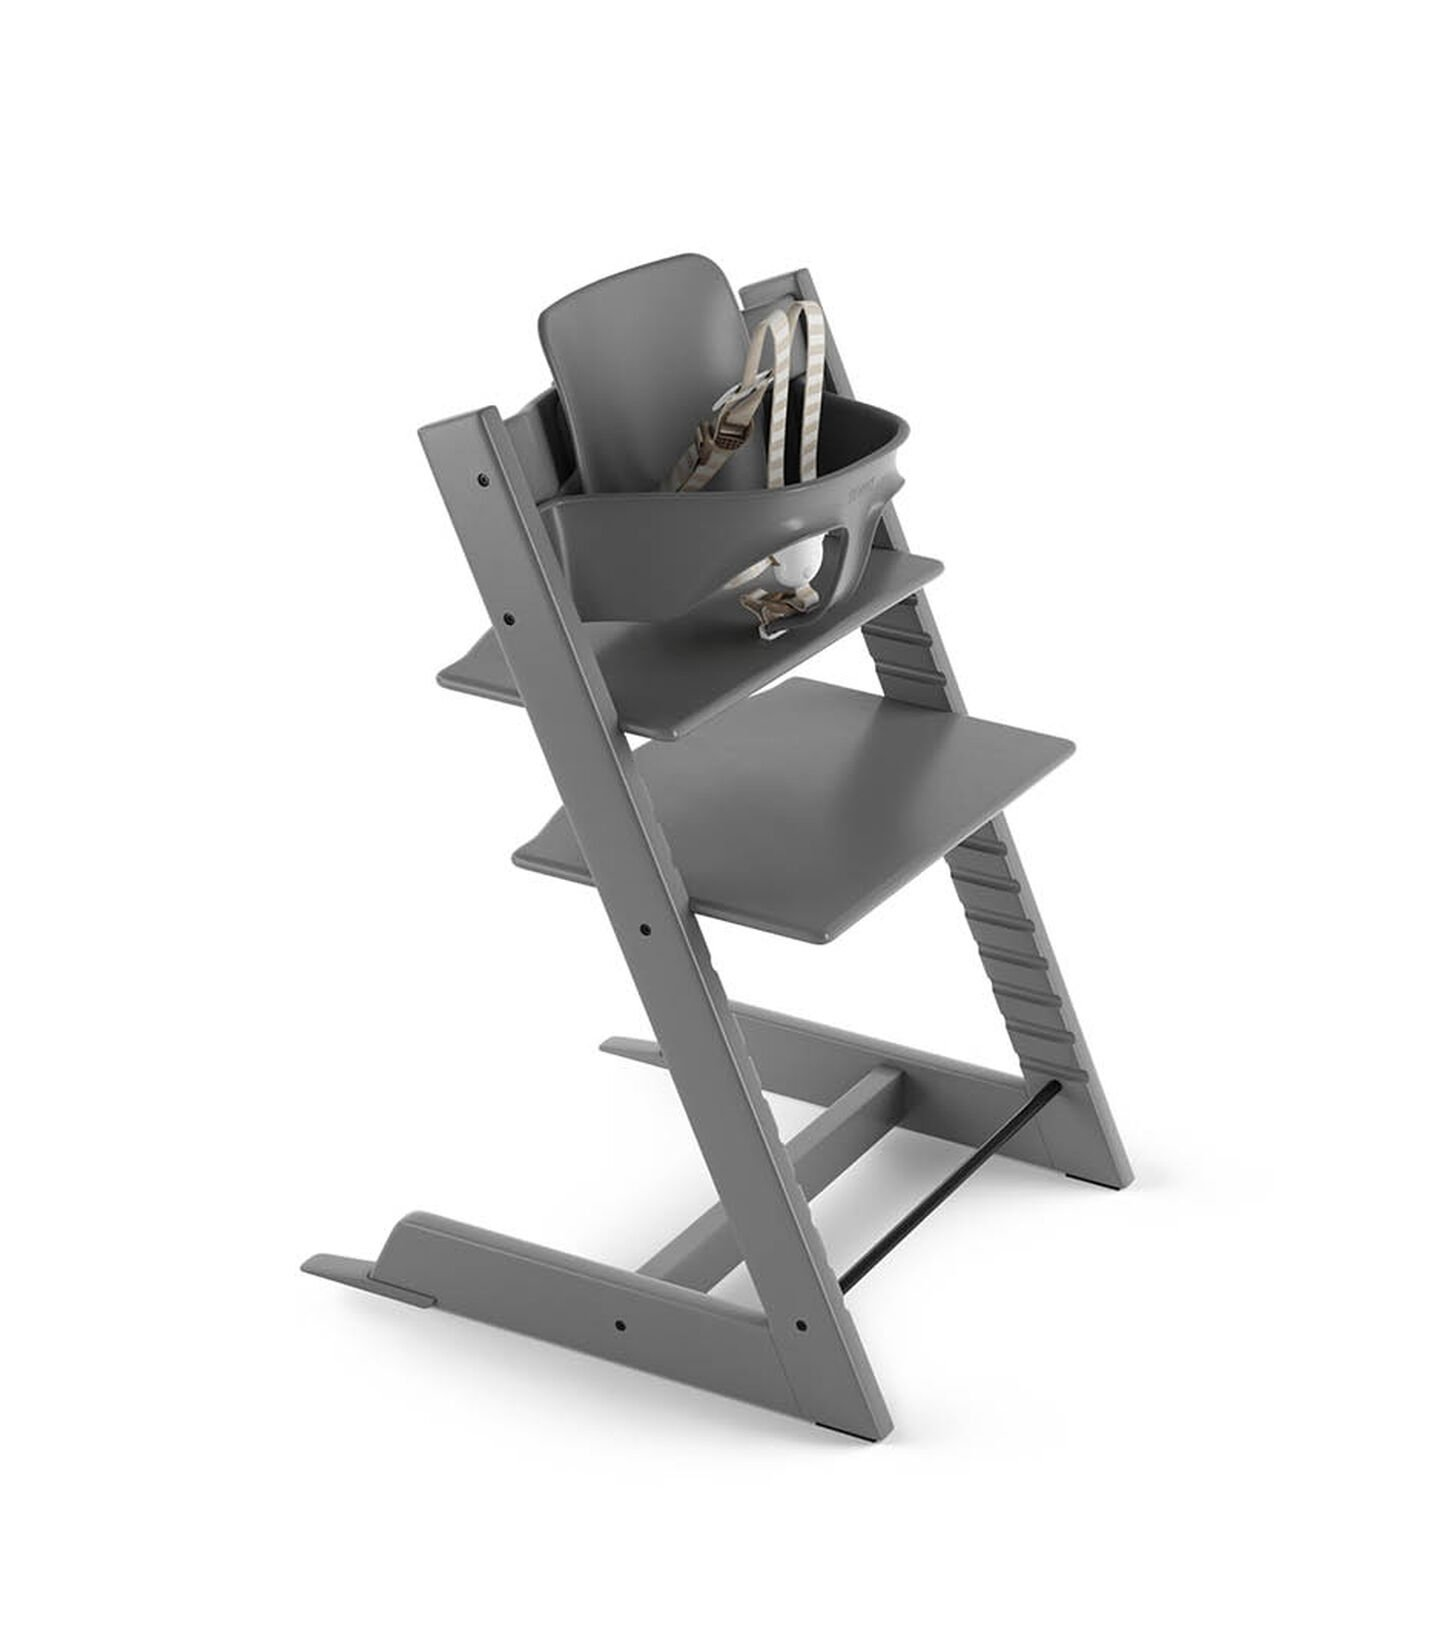 Tripp Trapp® Bundle High Chair US 18 Storm Grey, Storm Grey, mainview view 2